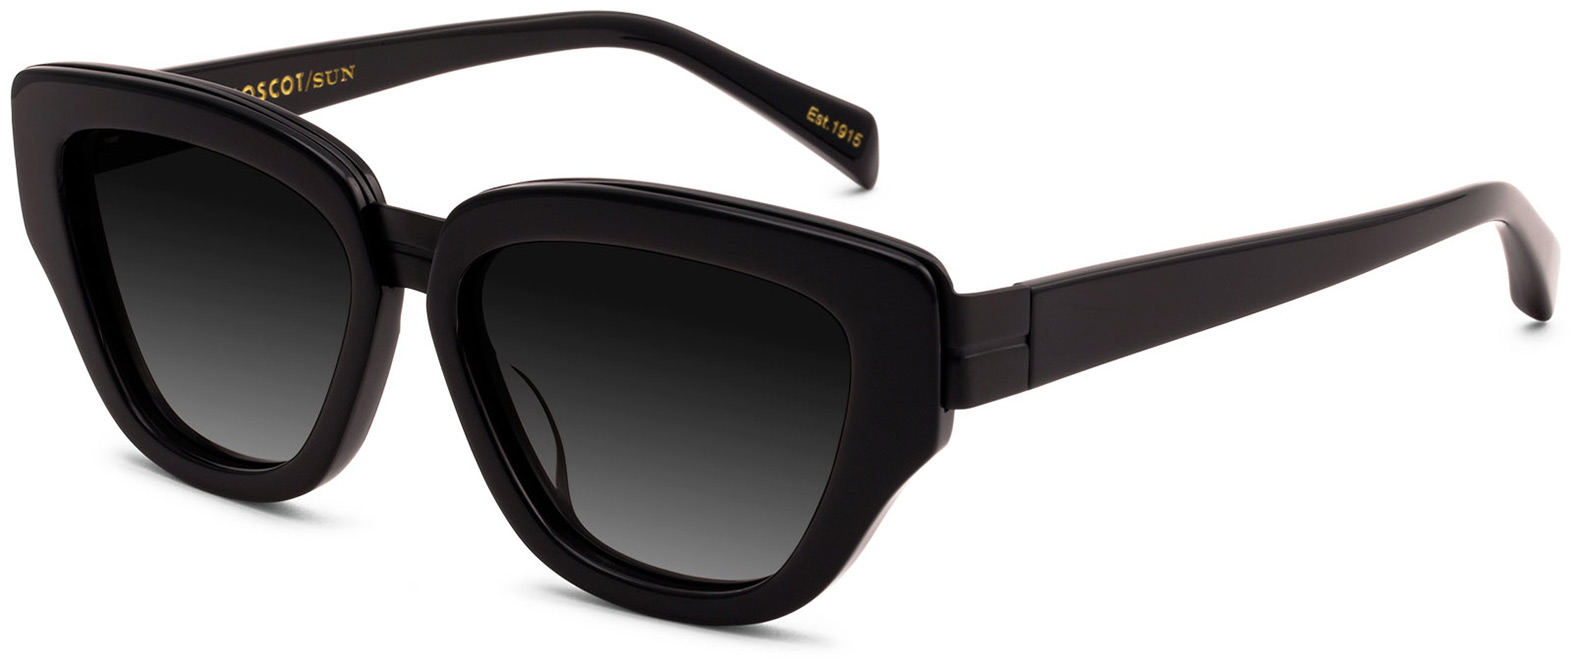 moscot-2013-sun-collection-sunglasses-54